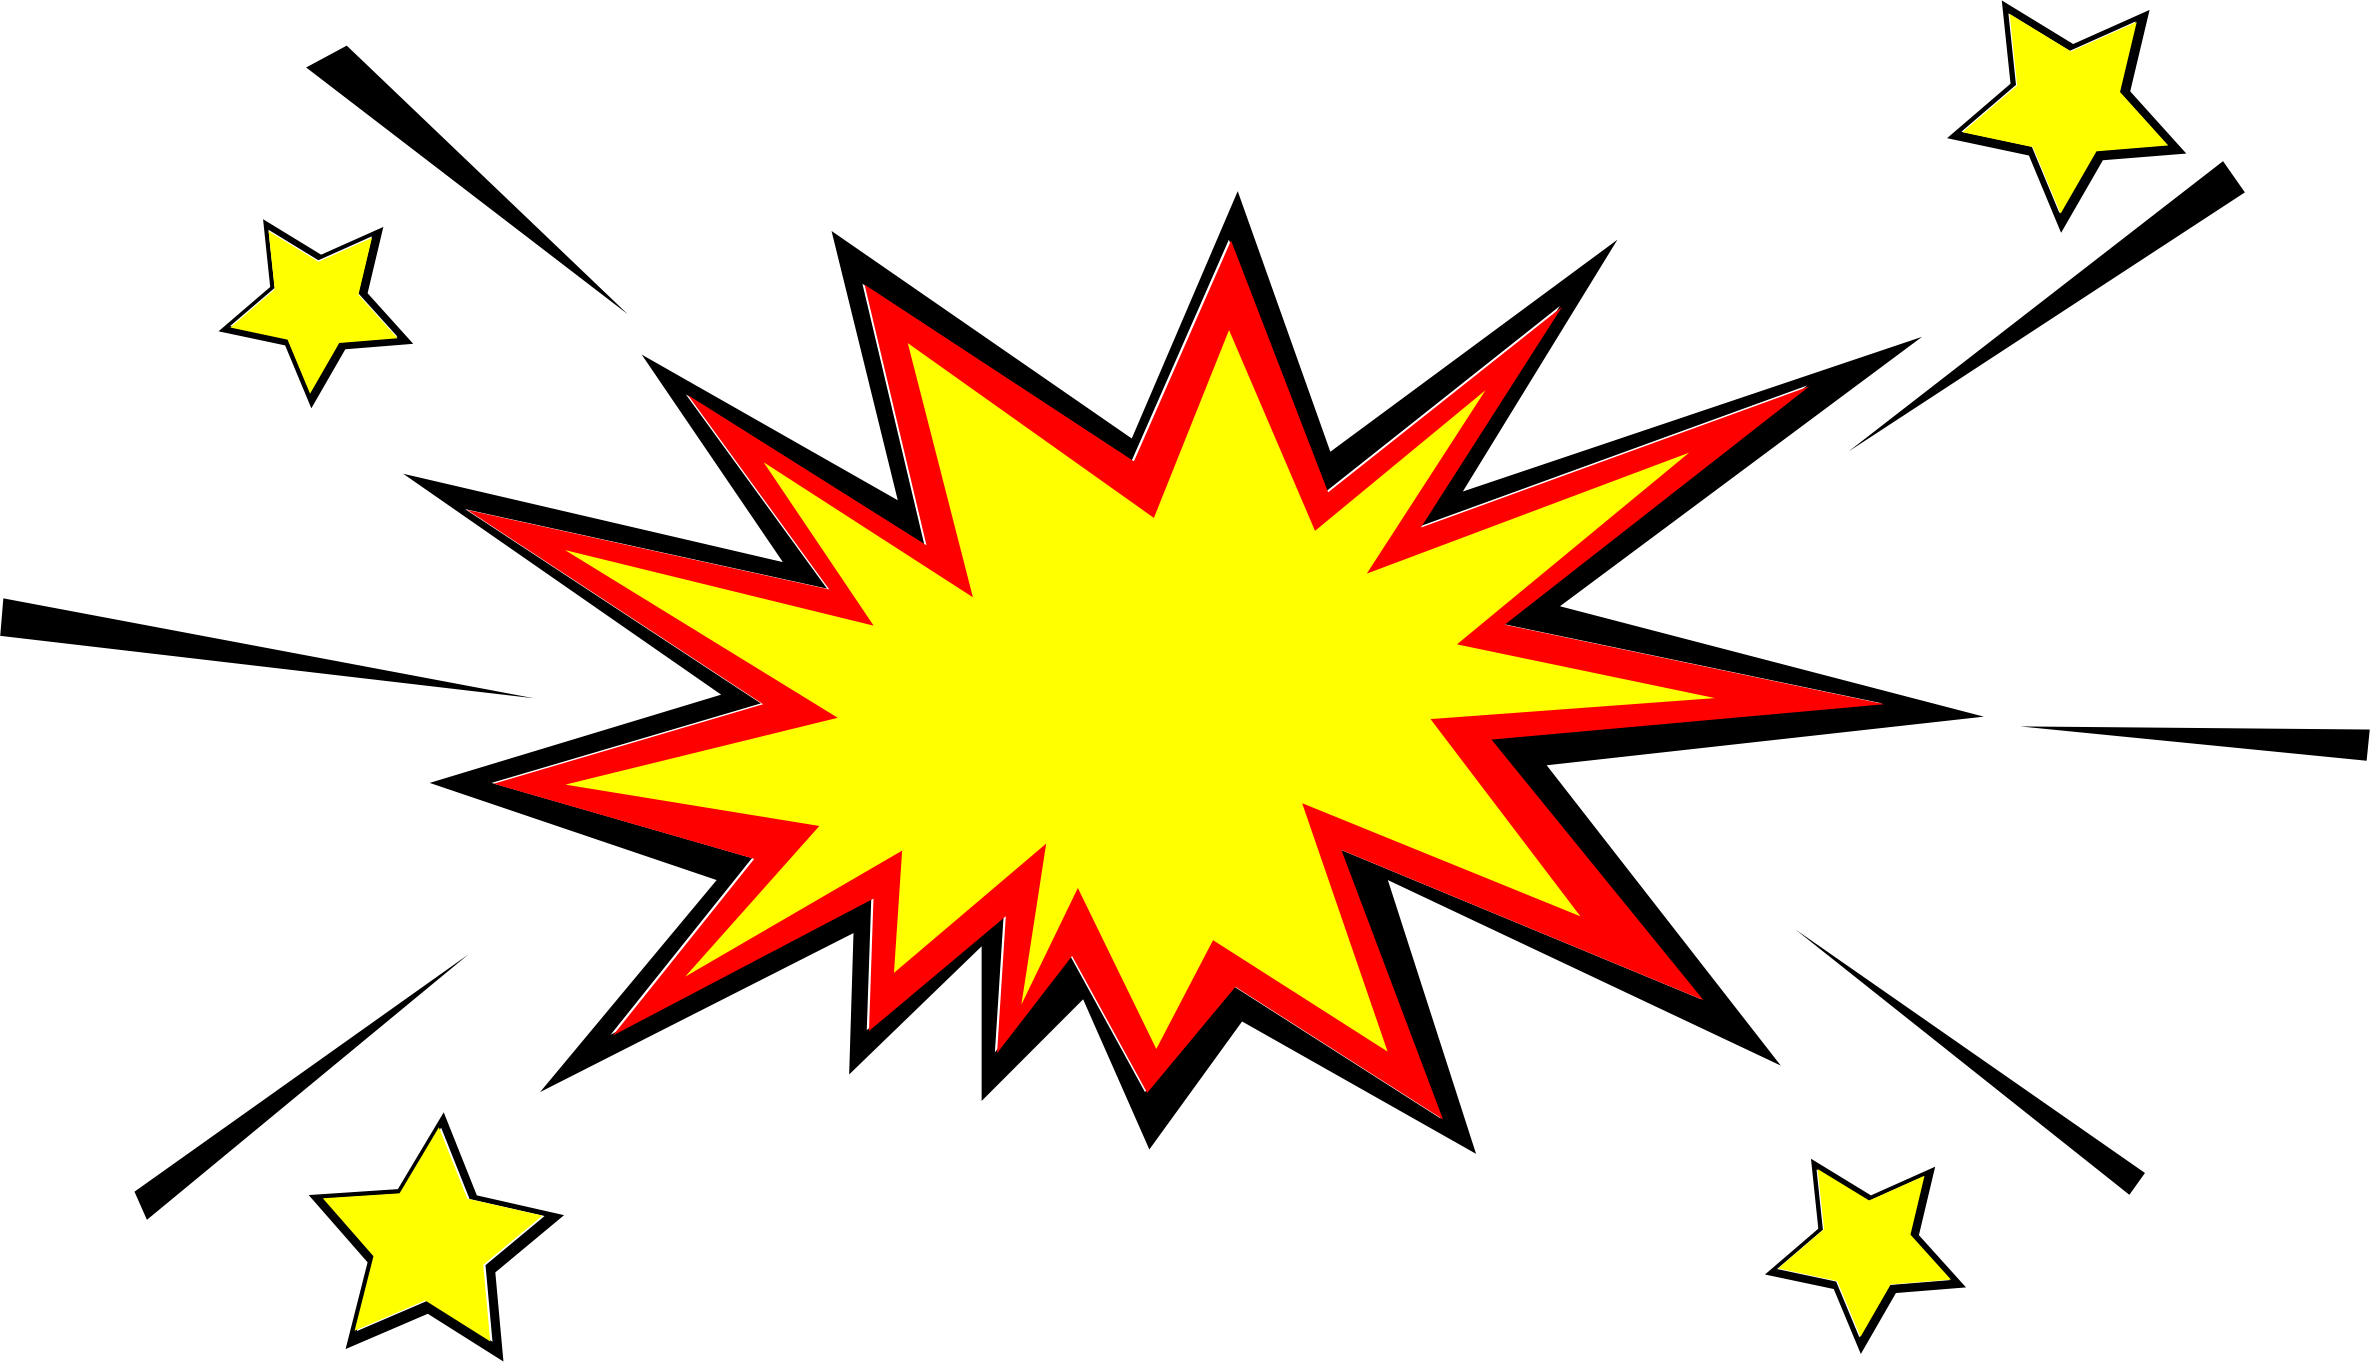 Explosion svg #6, Download drawings